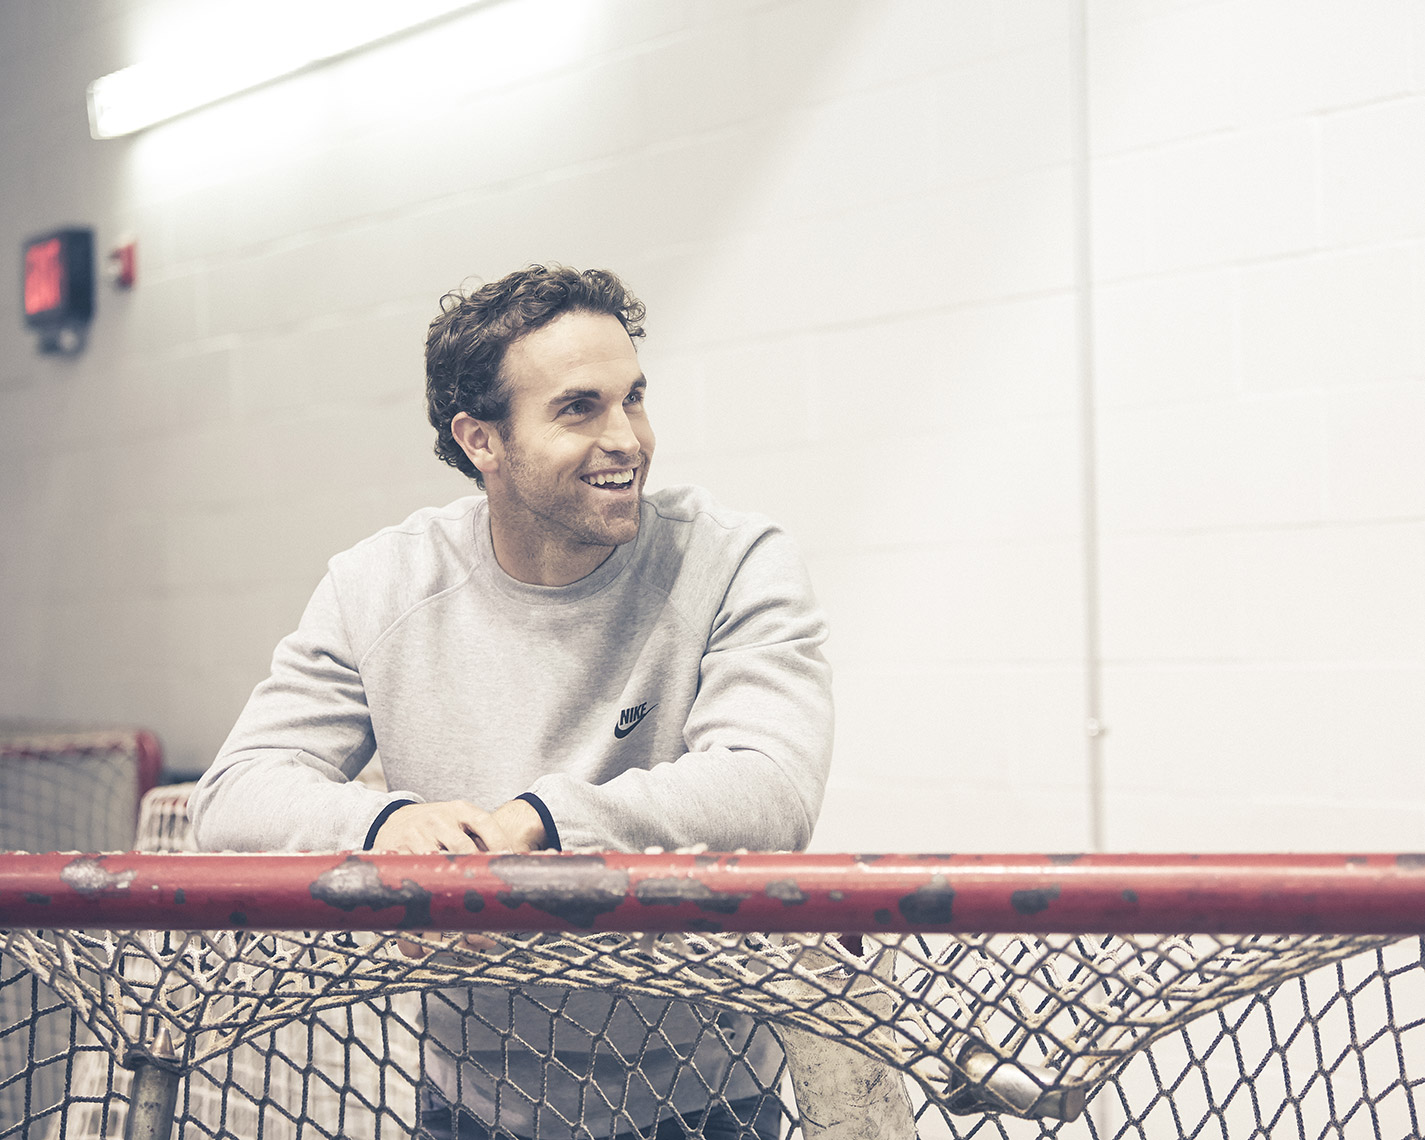 Andrew Ladd for Nike.